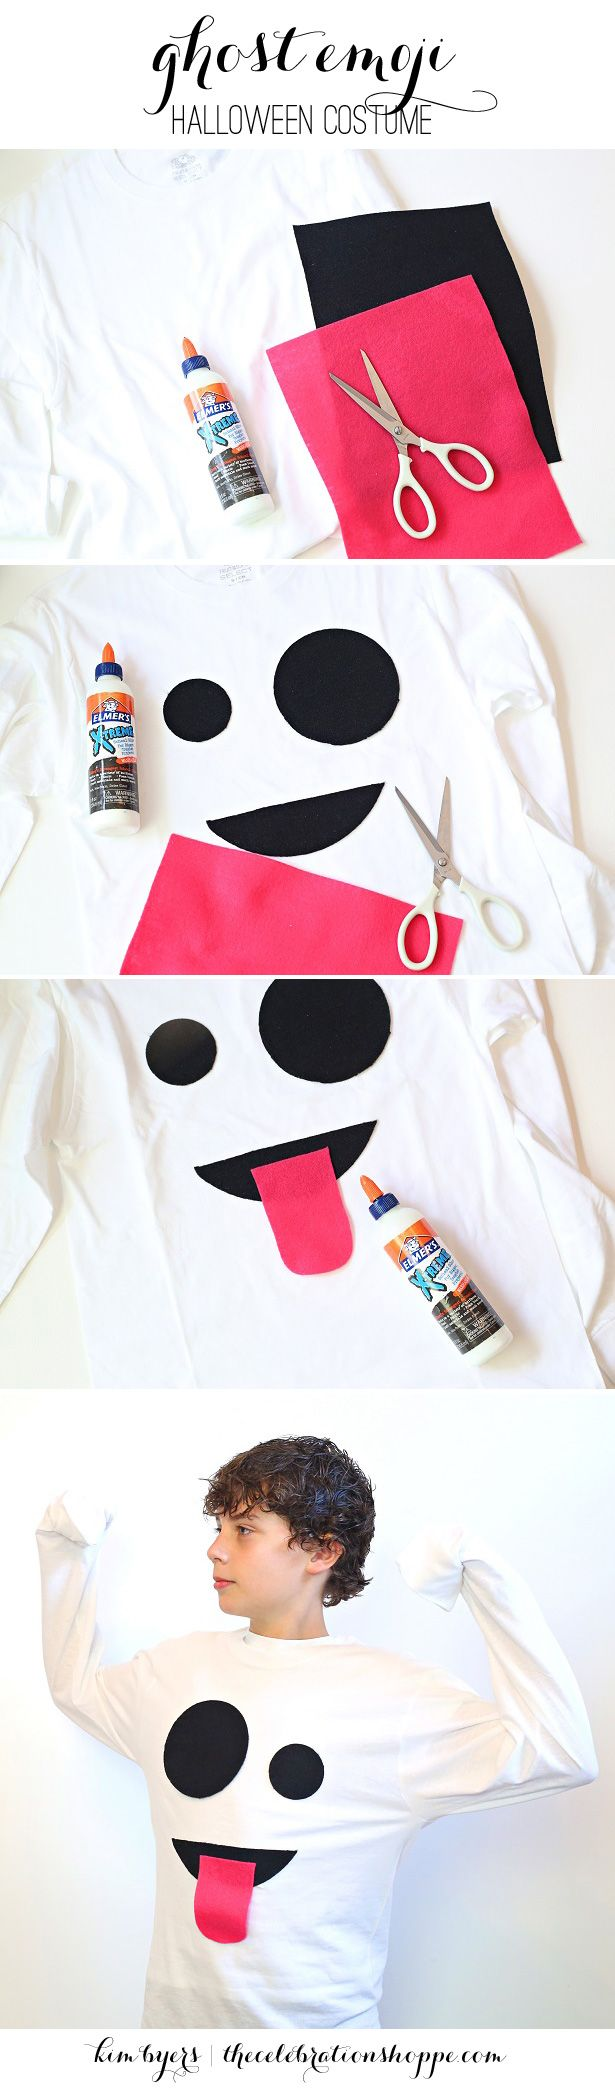 How To Make A Ghost Emoji Halloween Costume | Kim Byers